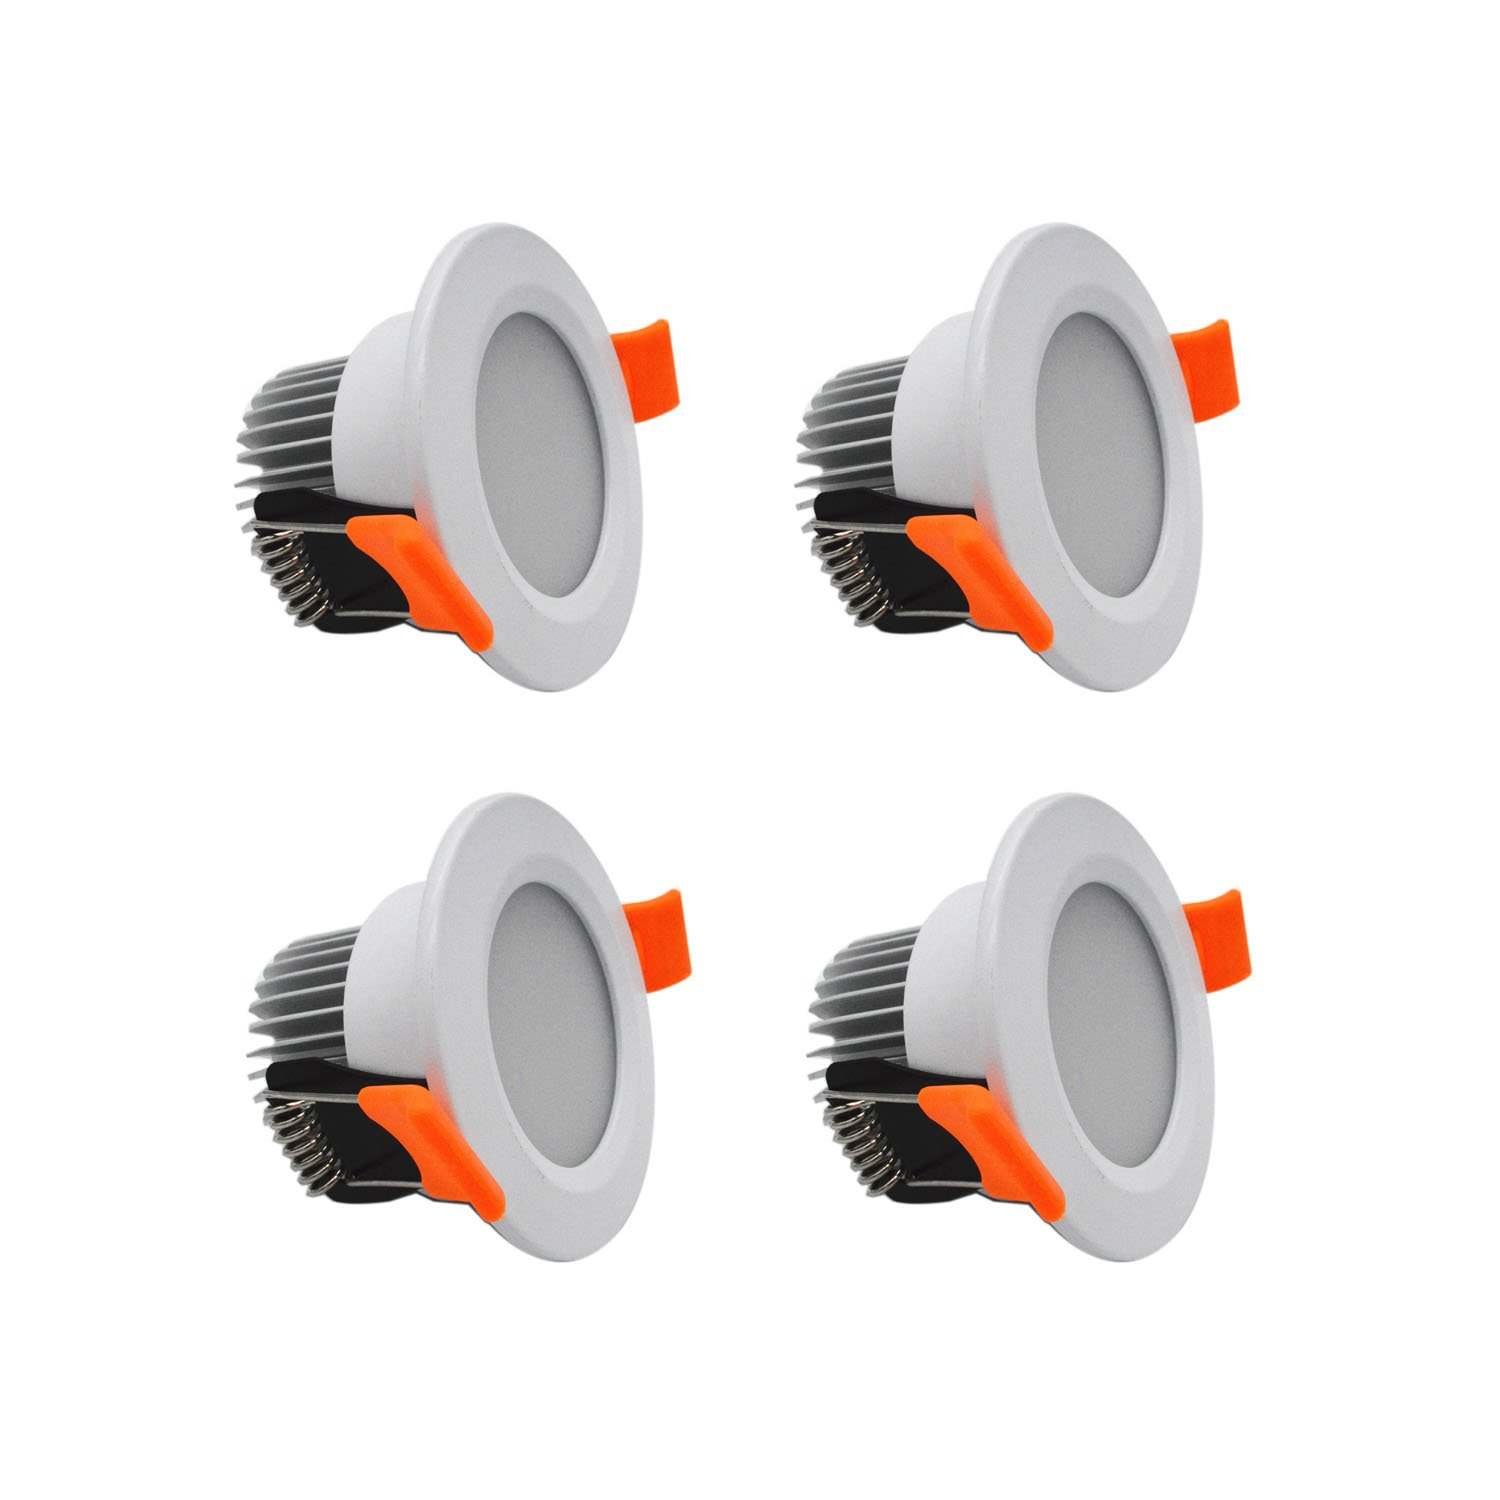 ZDPCYT 3W LED Downlight 12VDC Ceiling Light 180 Beam Angle Recessed mini Lamp 3000K-3500K Warm White Spotlights Fixture Trim Pack of 4 With LED Driver(Not Including 110/220-12V Power Adapter)